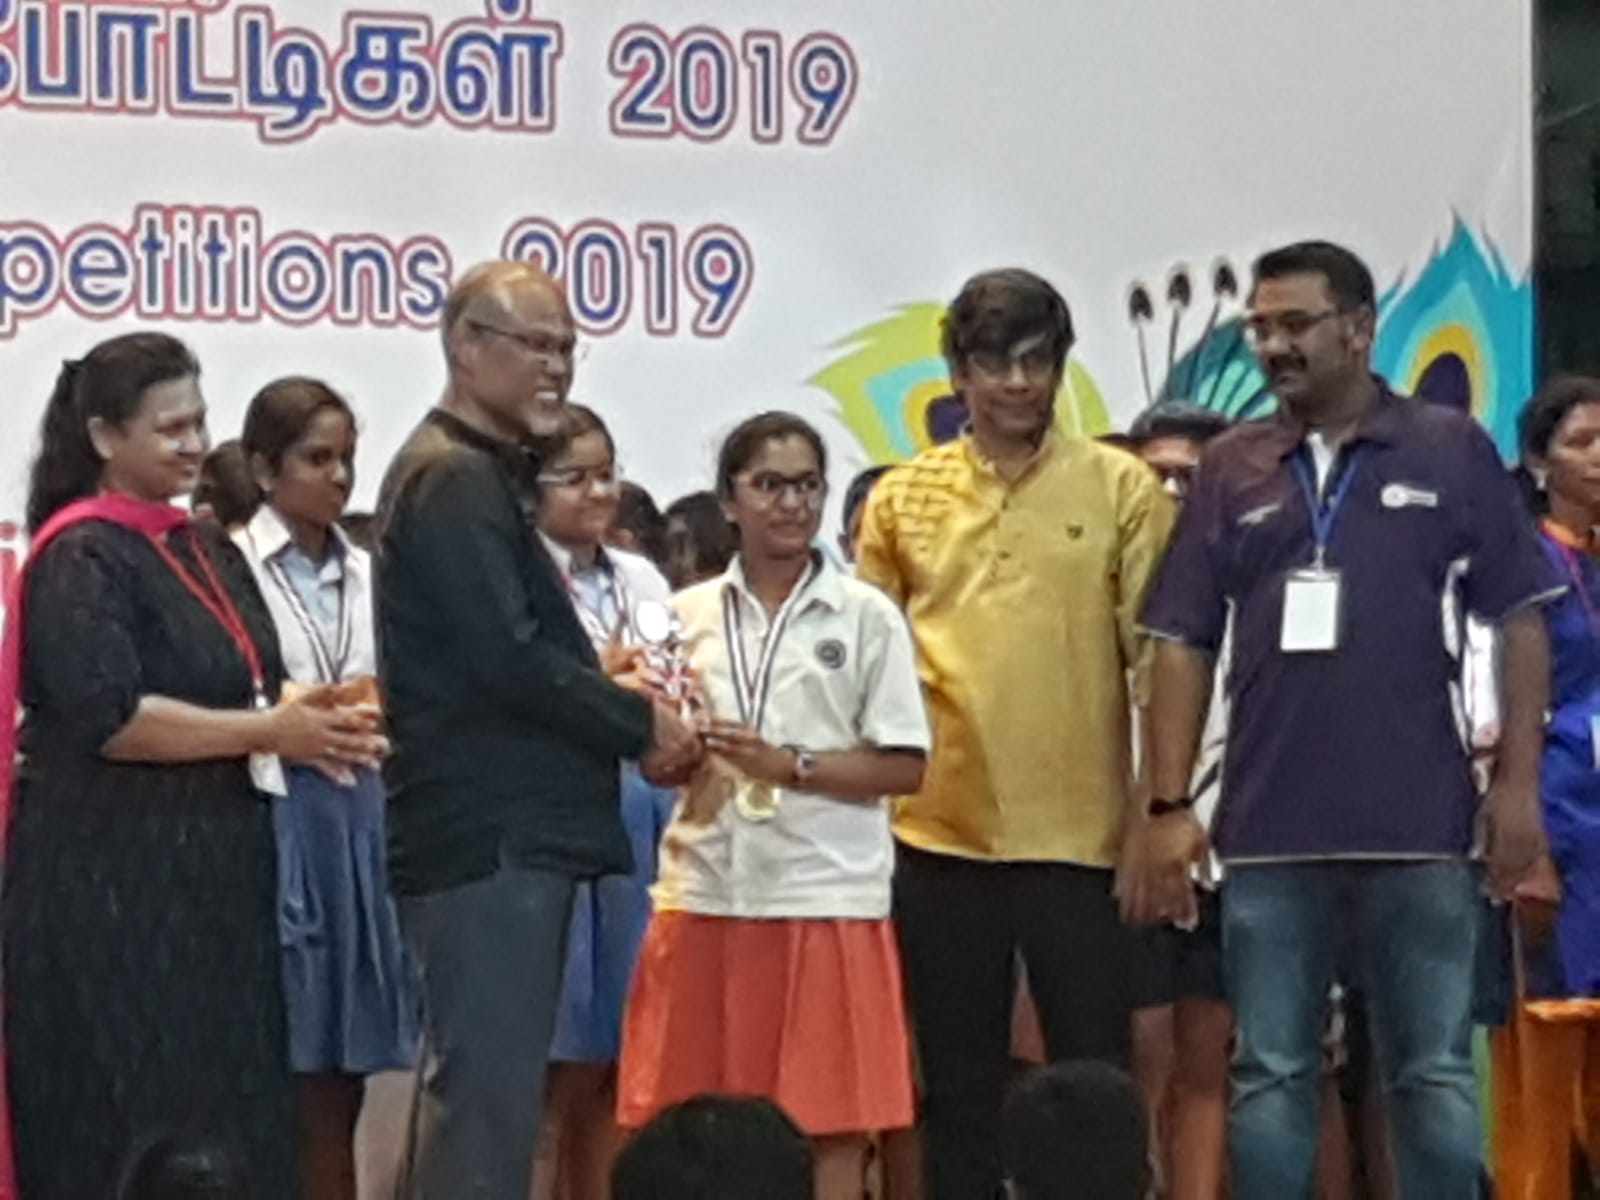 Priya receiving medal from Mr Masagos.JPG